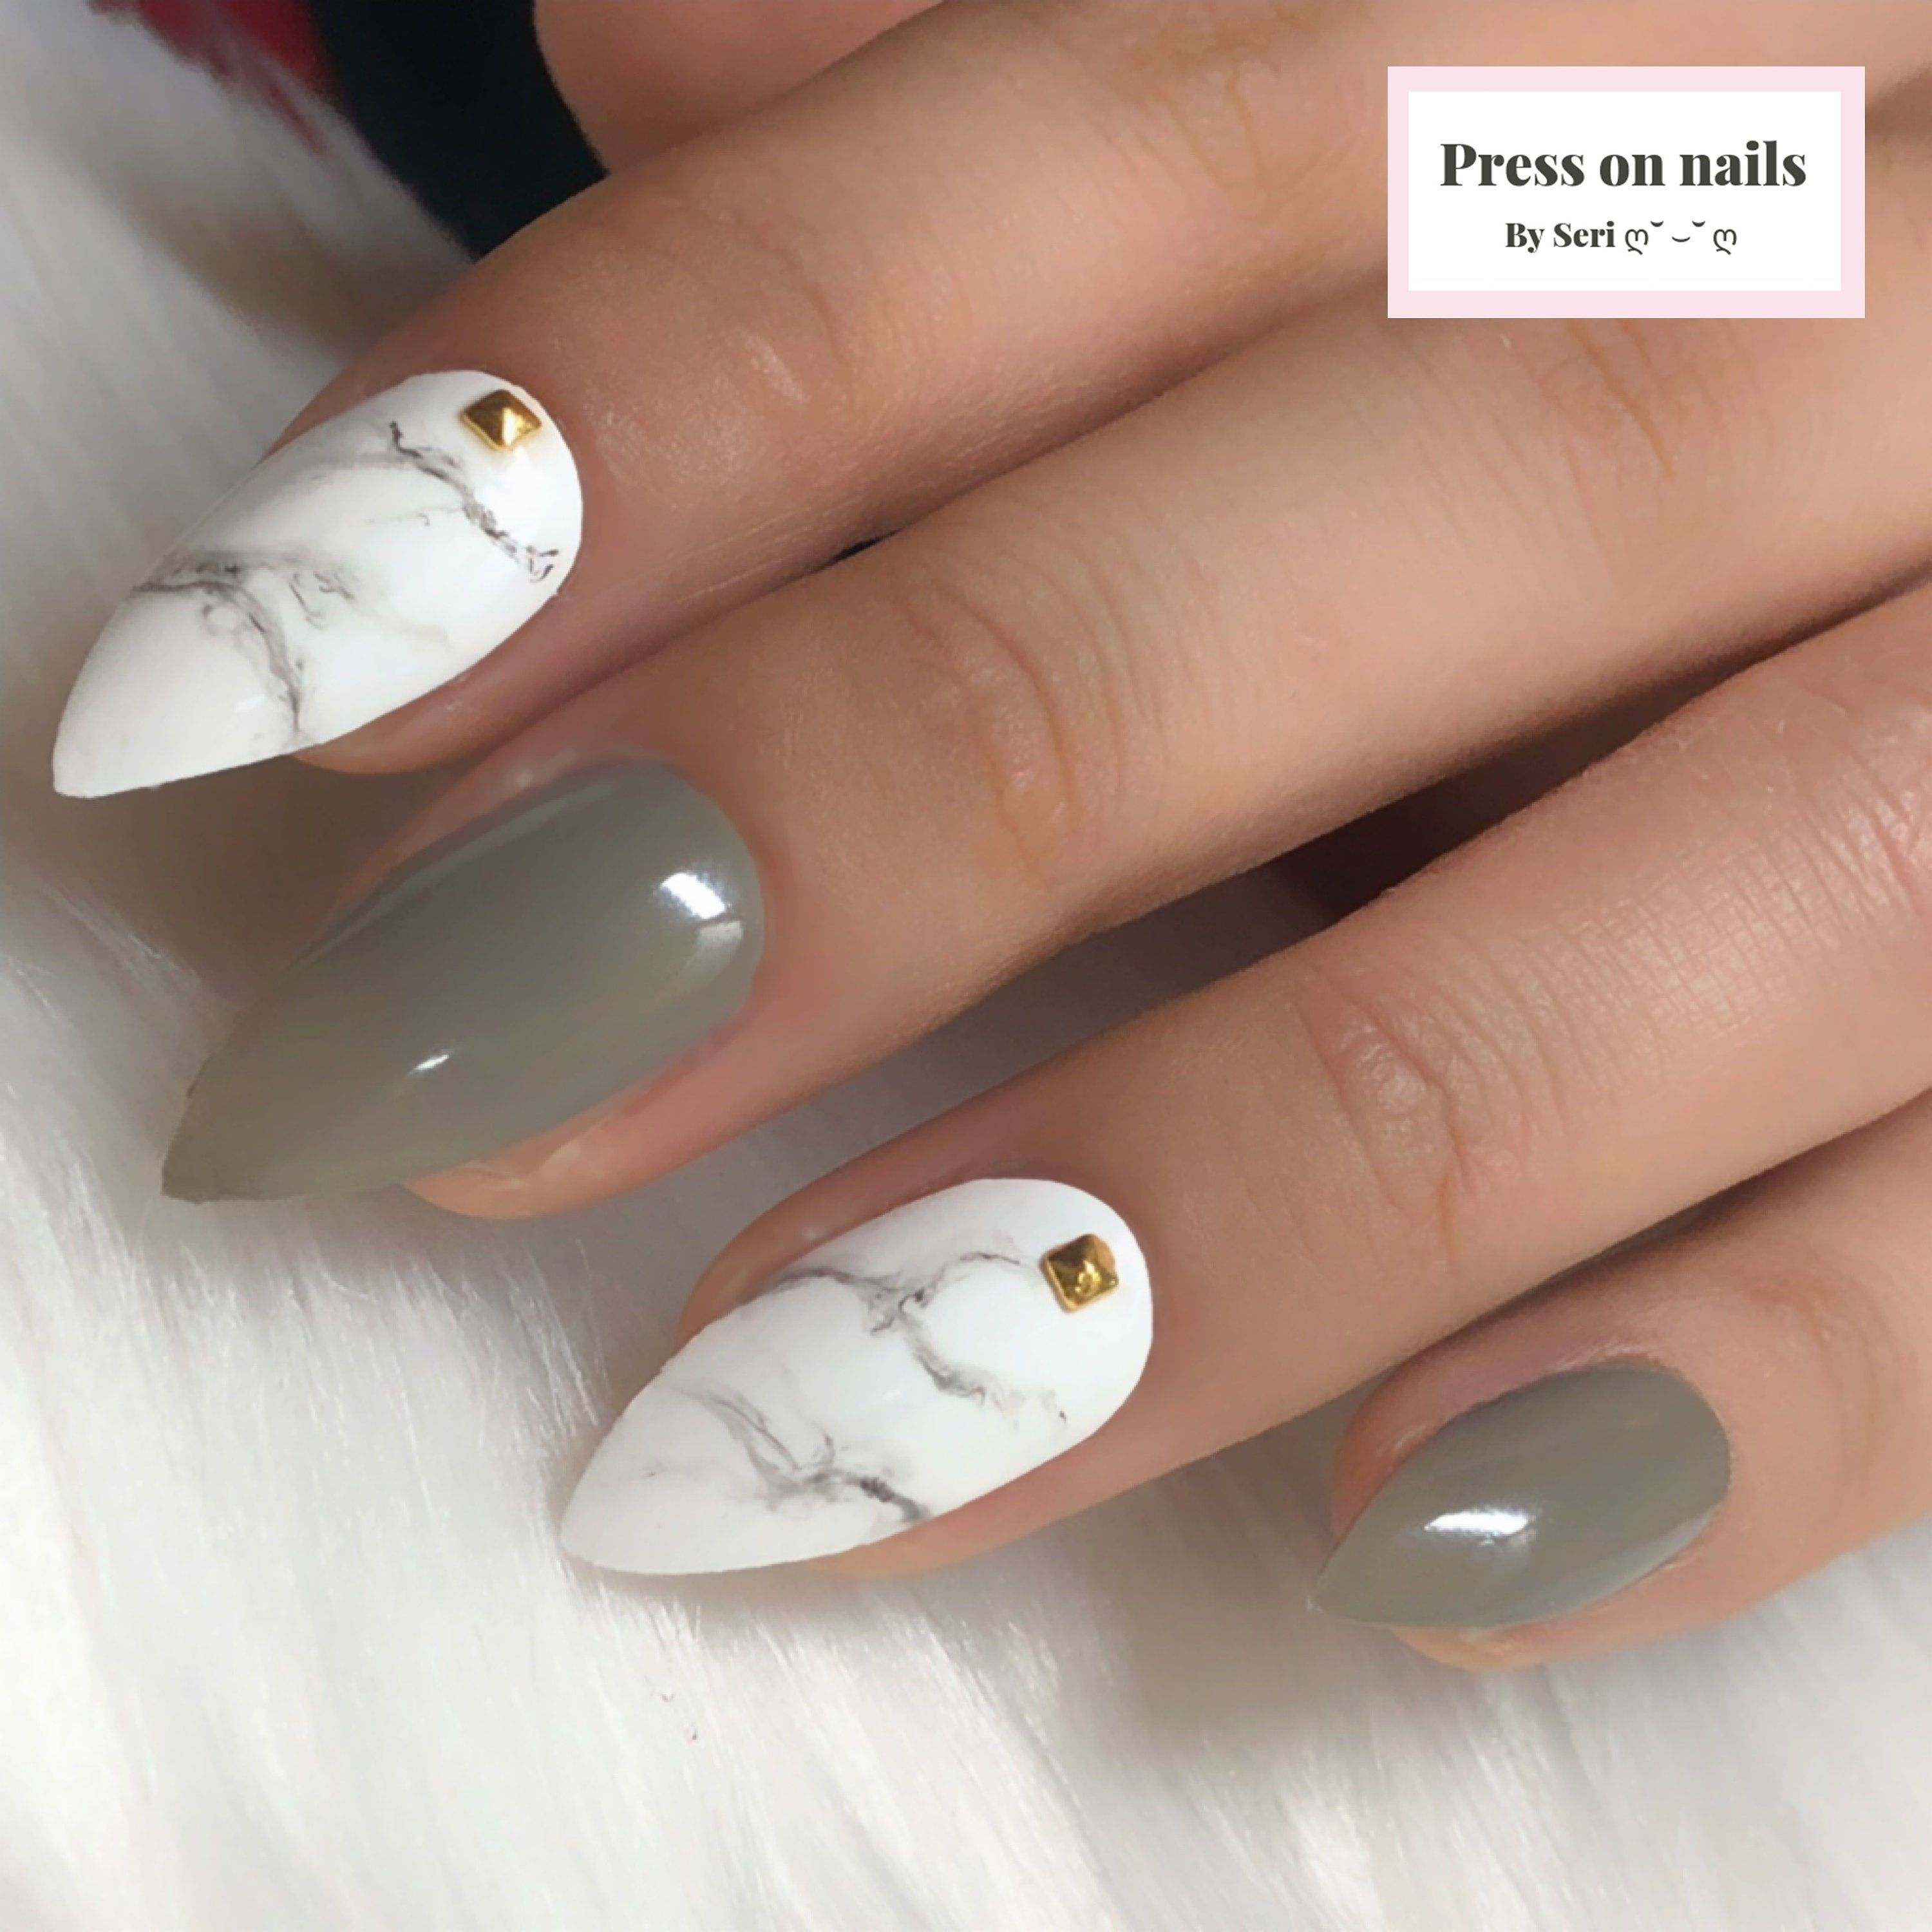 The Grey Green White Marble Hand Painted Press On Gel Nails Marble Coffin Nails Marble Stiletto Nails Marble Fake Nails In 2020 Gel Nails Fake Nails Coffin Nails